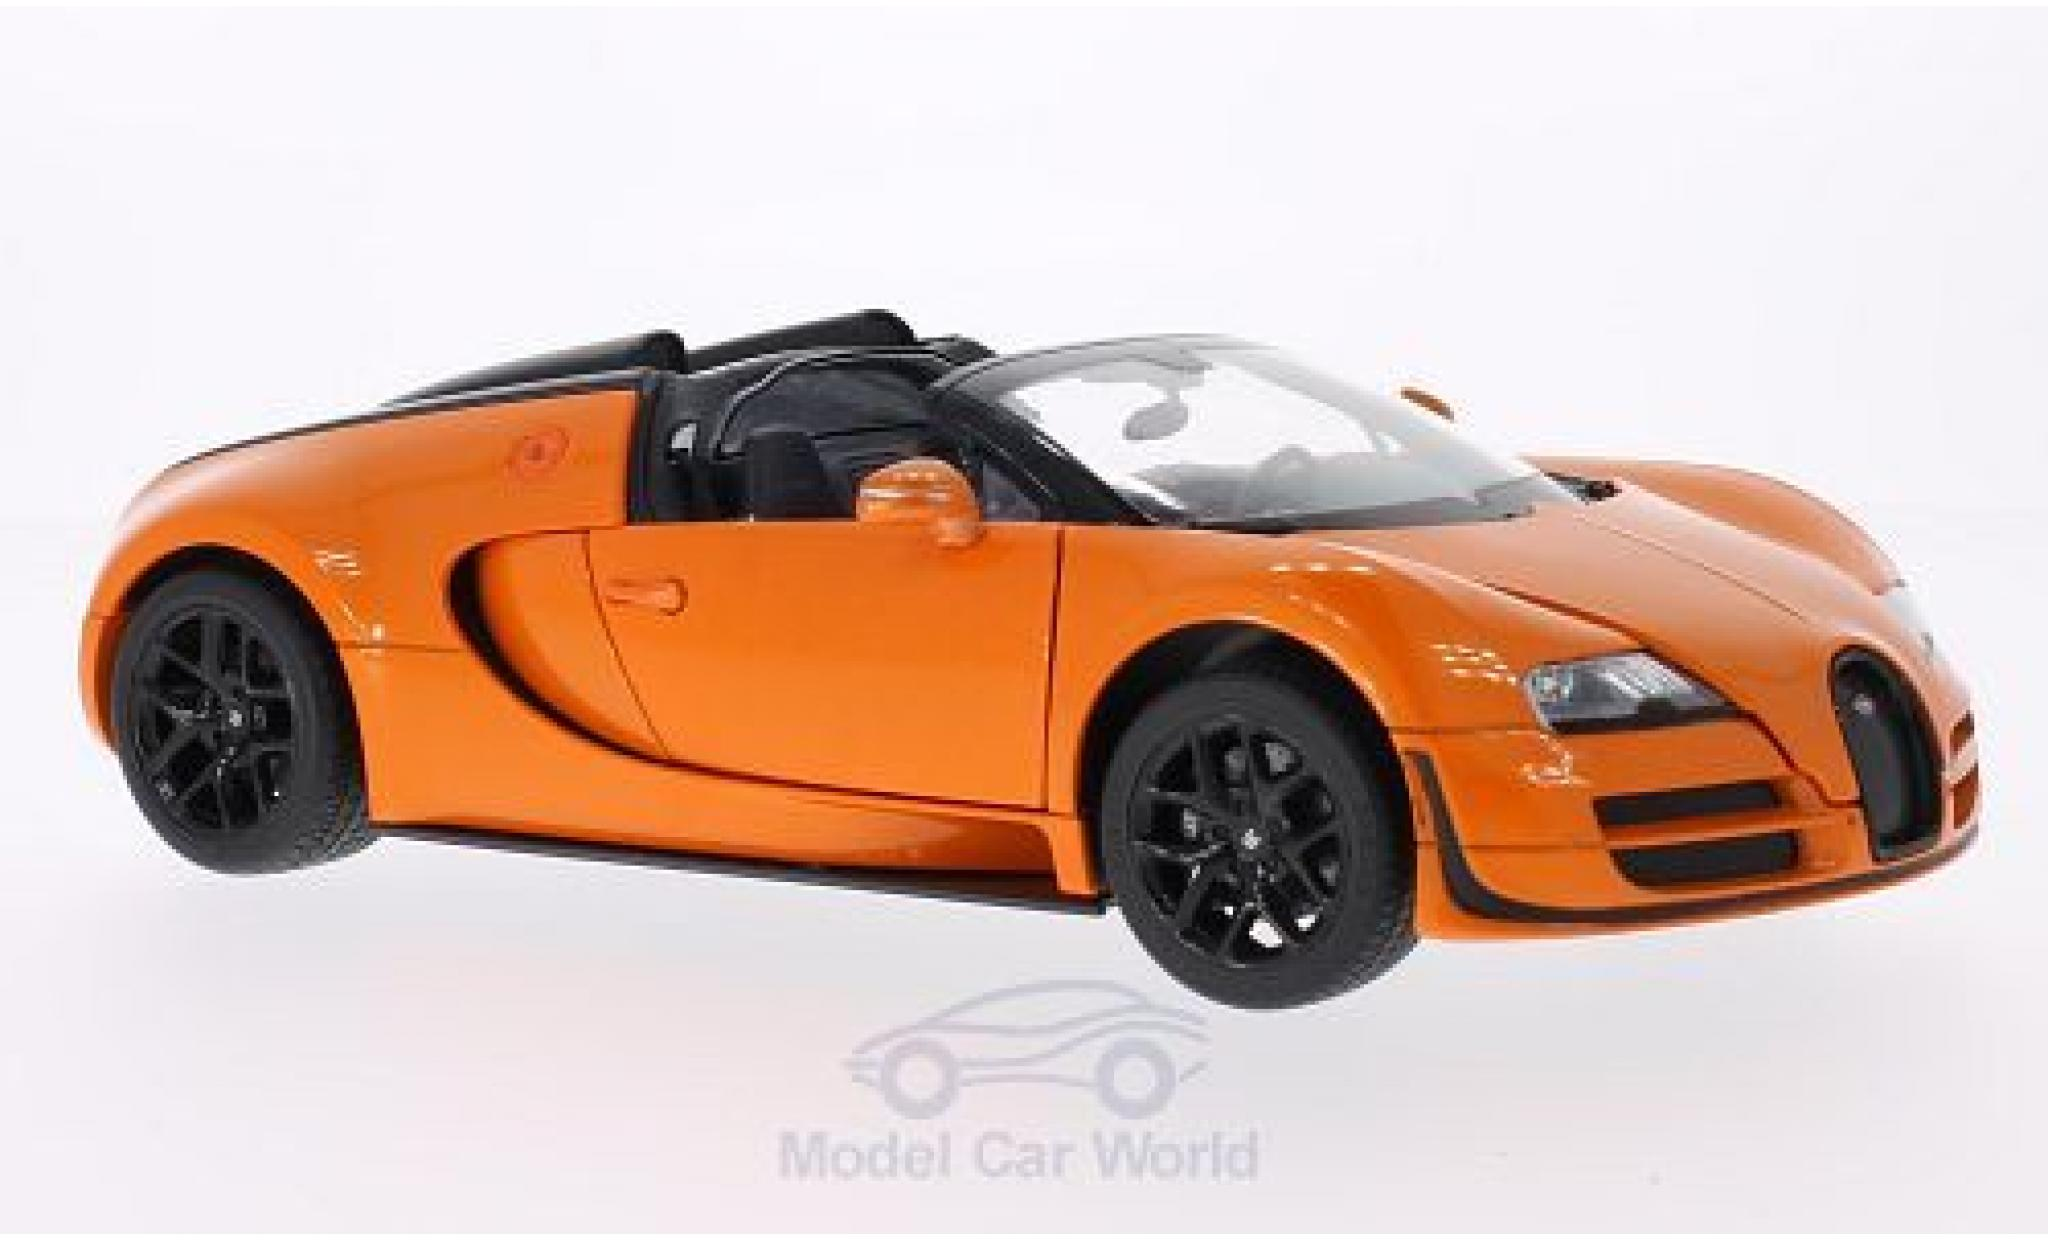 Bugatti Veyron Grand Sport 1/18 Rastar 16.4 Grand Sport Vitesse orange